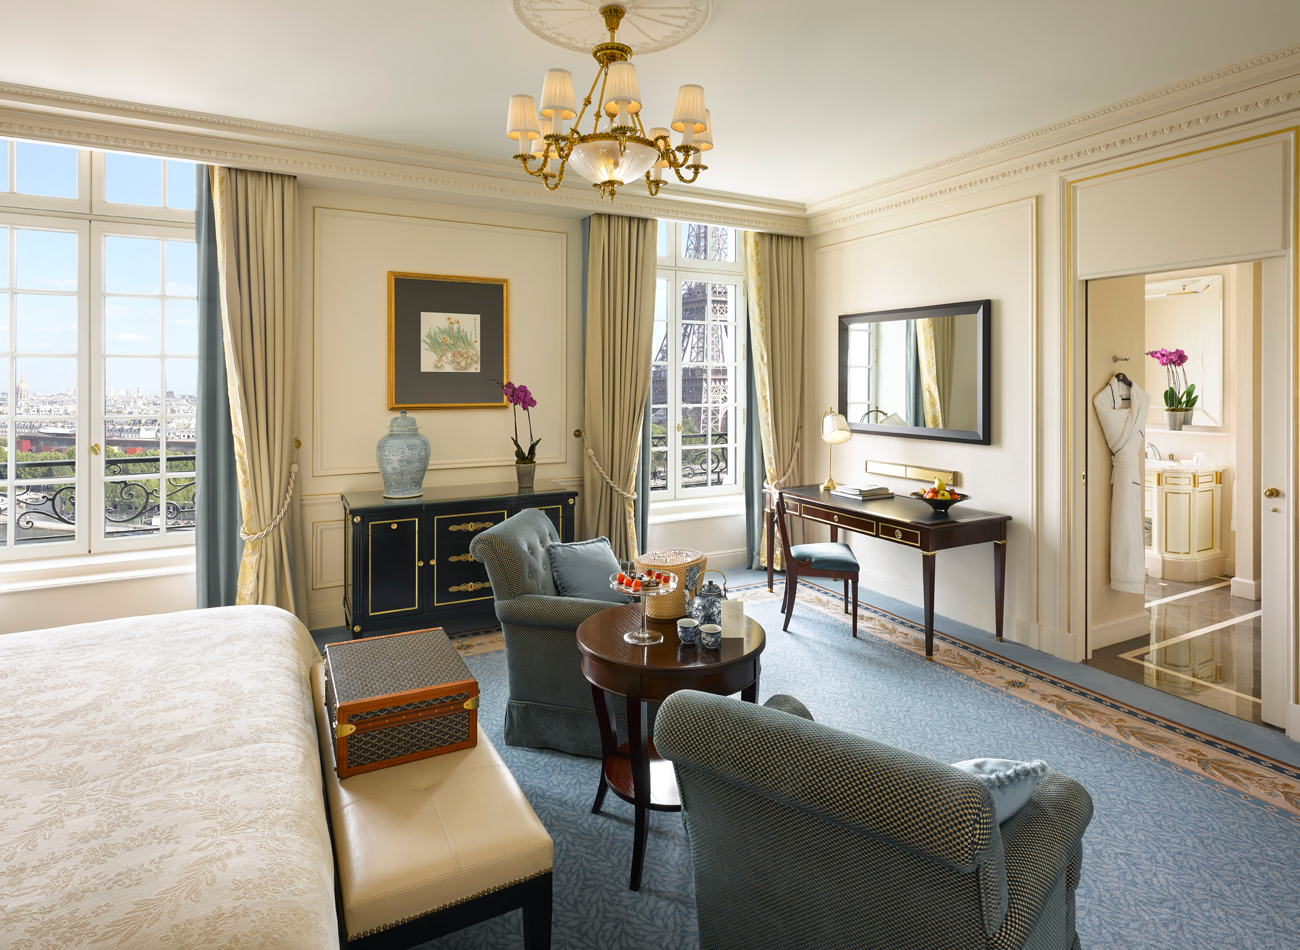 Shangri-La Paris: 3rd Night Free + Shangri-La Luxury Circle Benefits